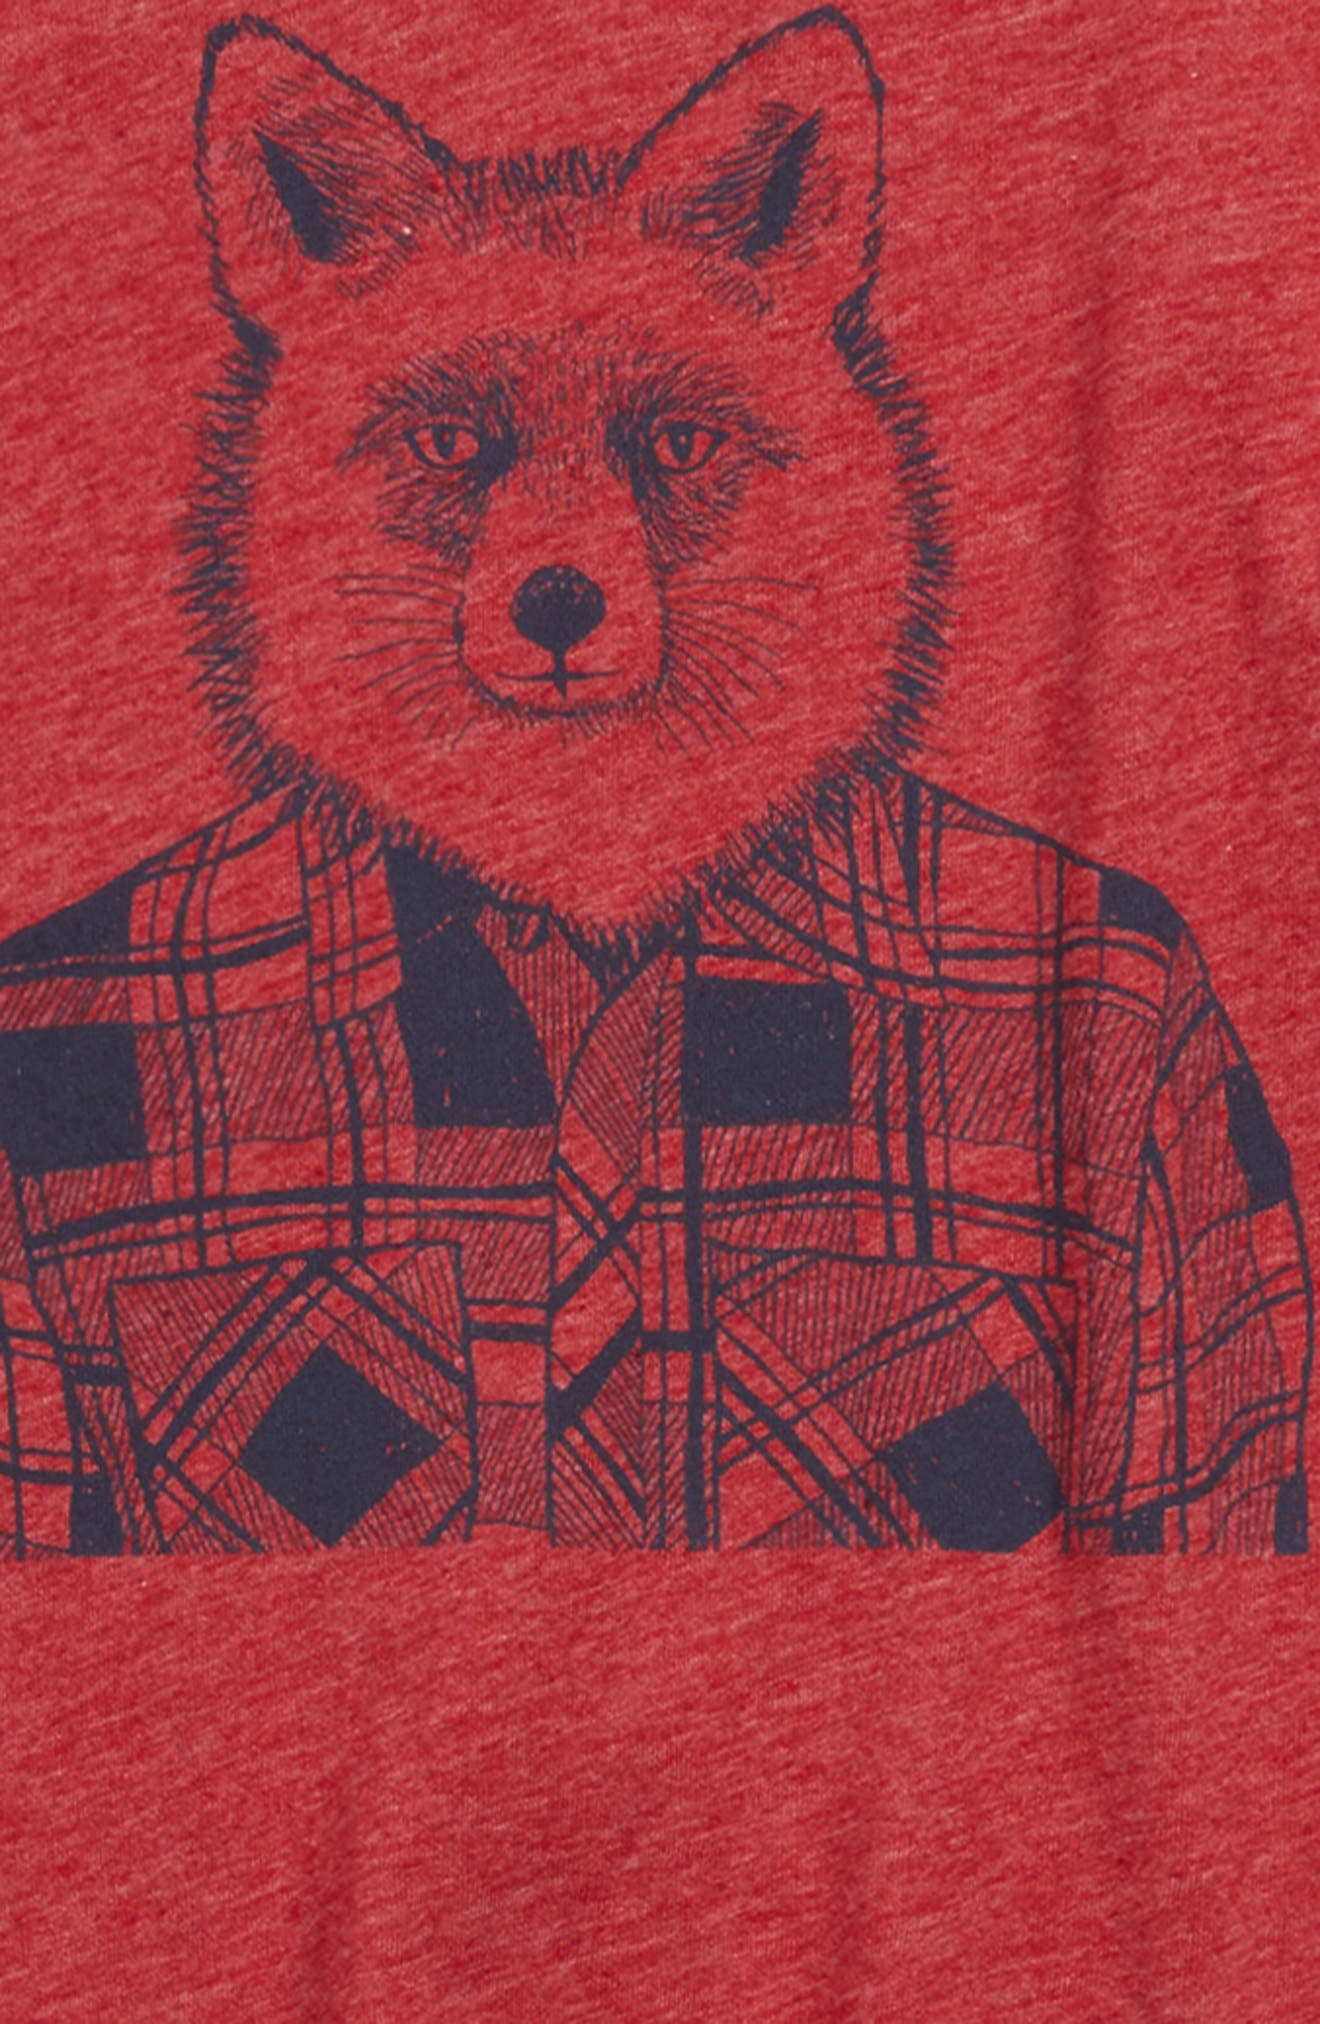 Graphic Tee,                             Alternate thumbnail 3, color,                             Red Chili Hipster Fox